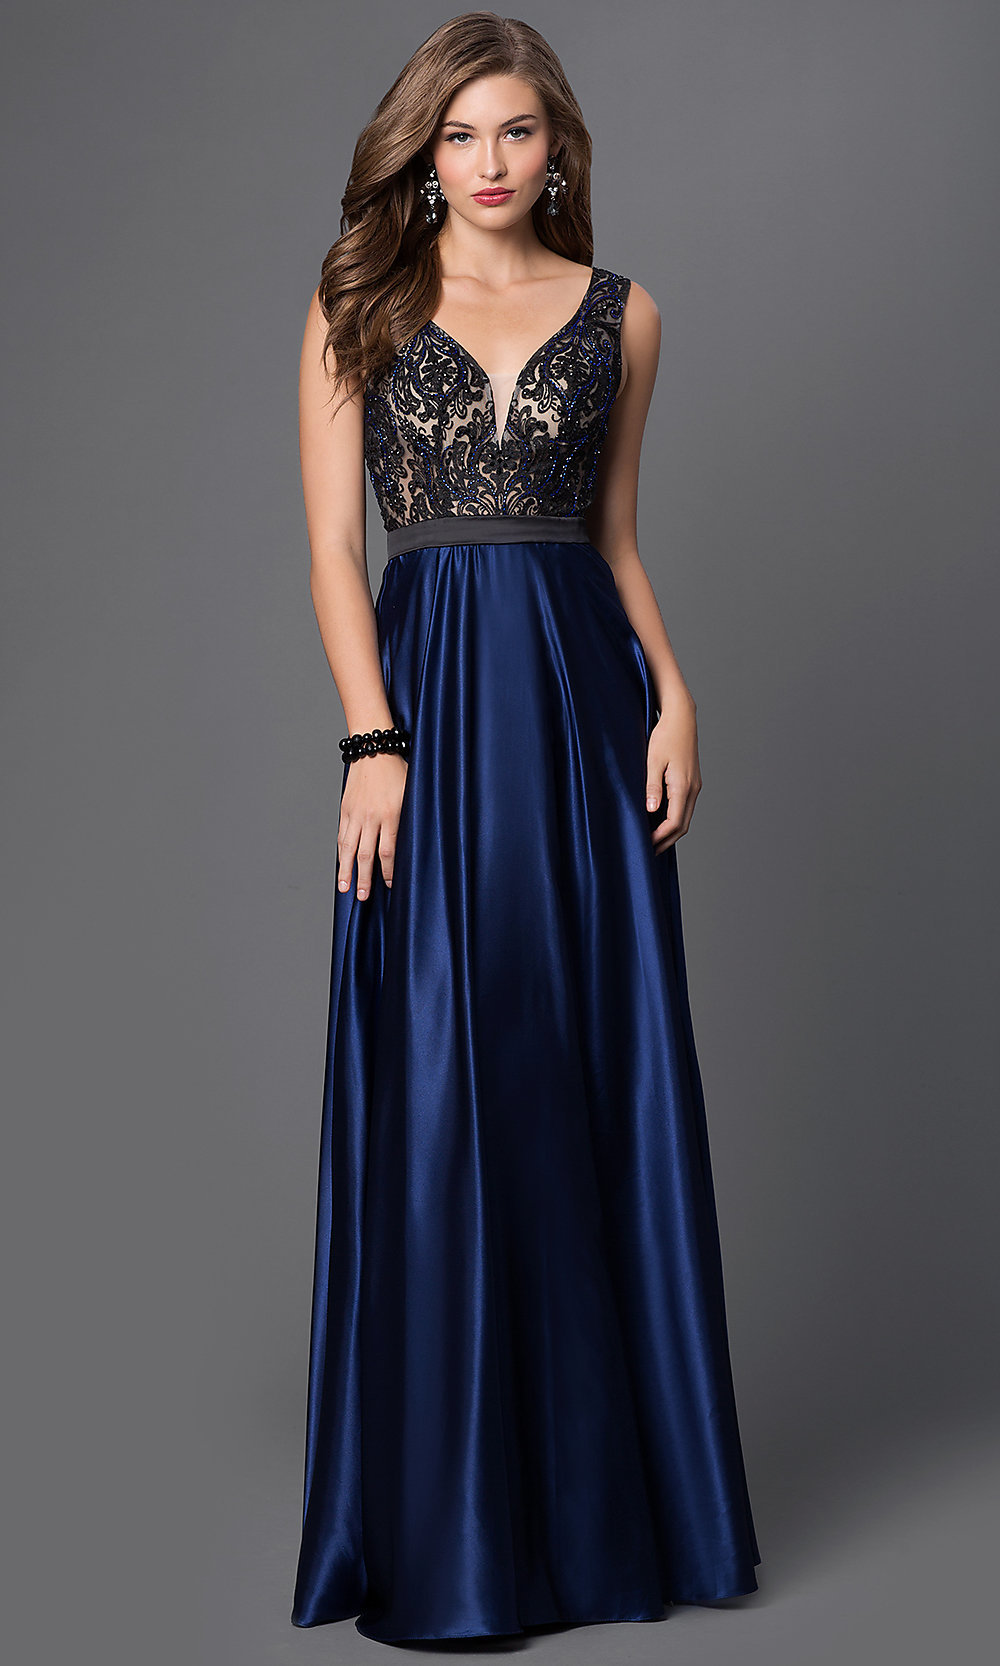 Celebrity Prom Dresses Sexy Evening Gowns Promgirl Po 7352